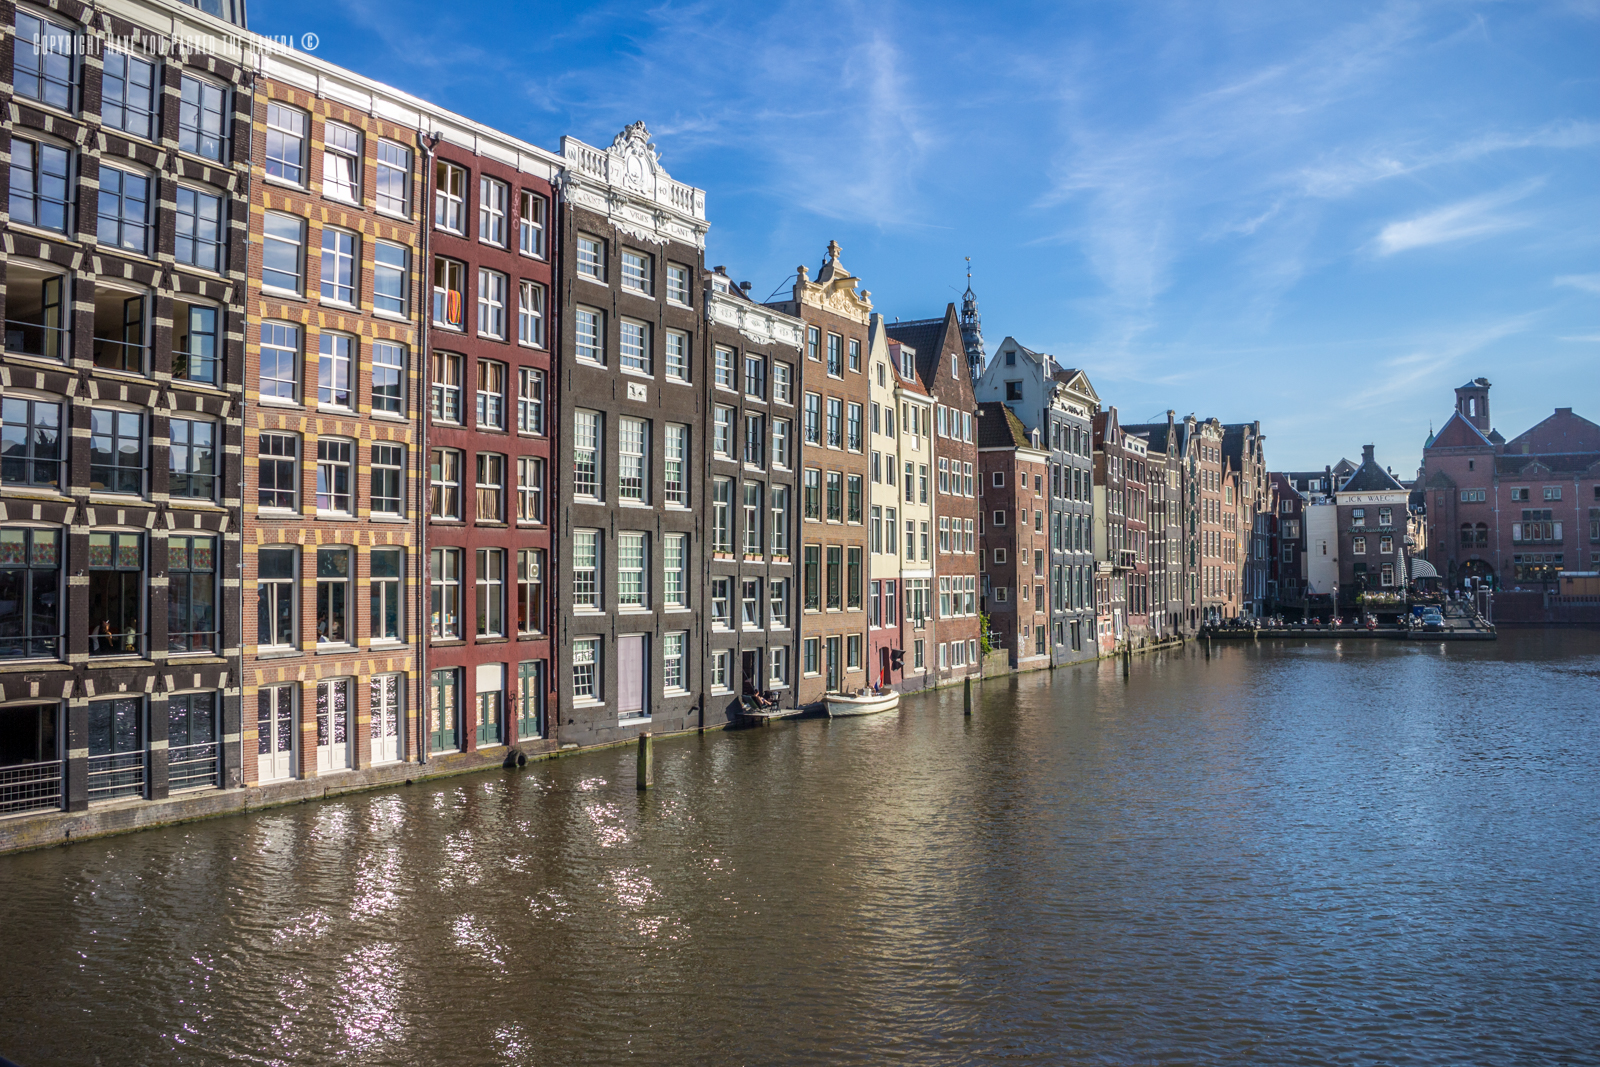 essays on amsterdam Writing the essay directions: amsterdam in 1647 with his wife, his recently widowed sister, and her three children, he was horrified instead of streets of as he expected he saw mud microsoft word - peter stuyvesant reviseddoc.